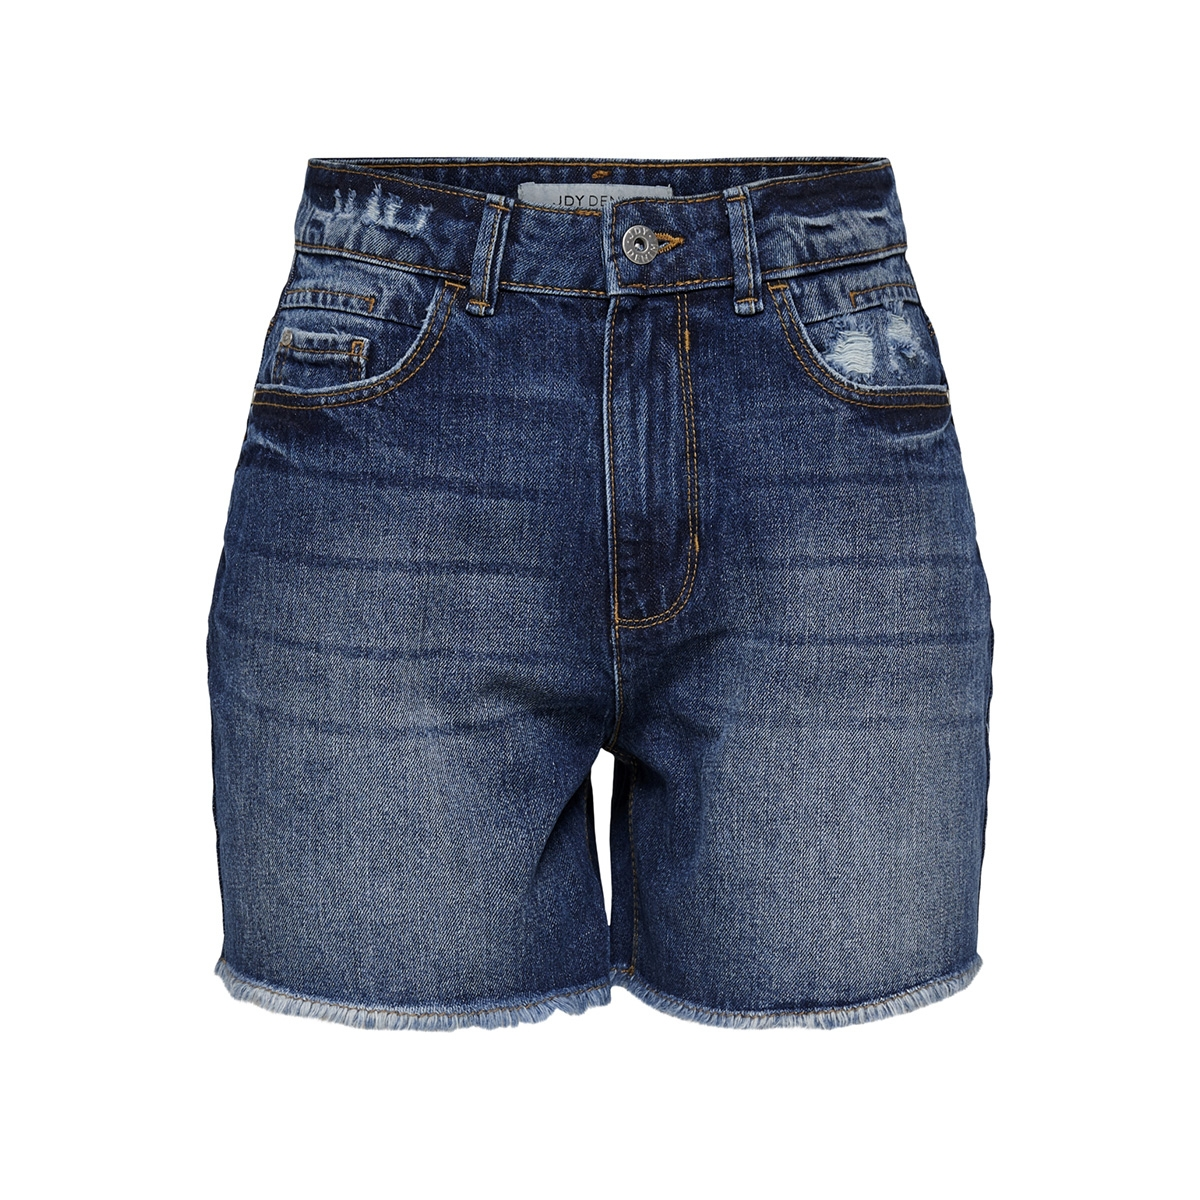 jdyketty high denim shorts  m blue 15176030 jacqueline de yong korte broek medium blue denim